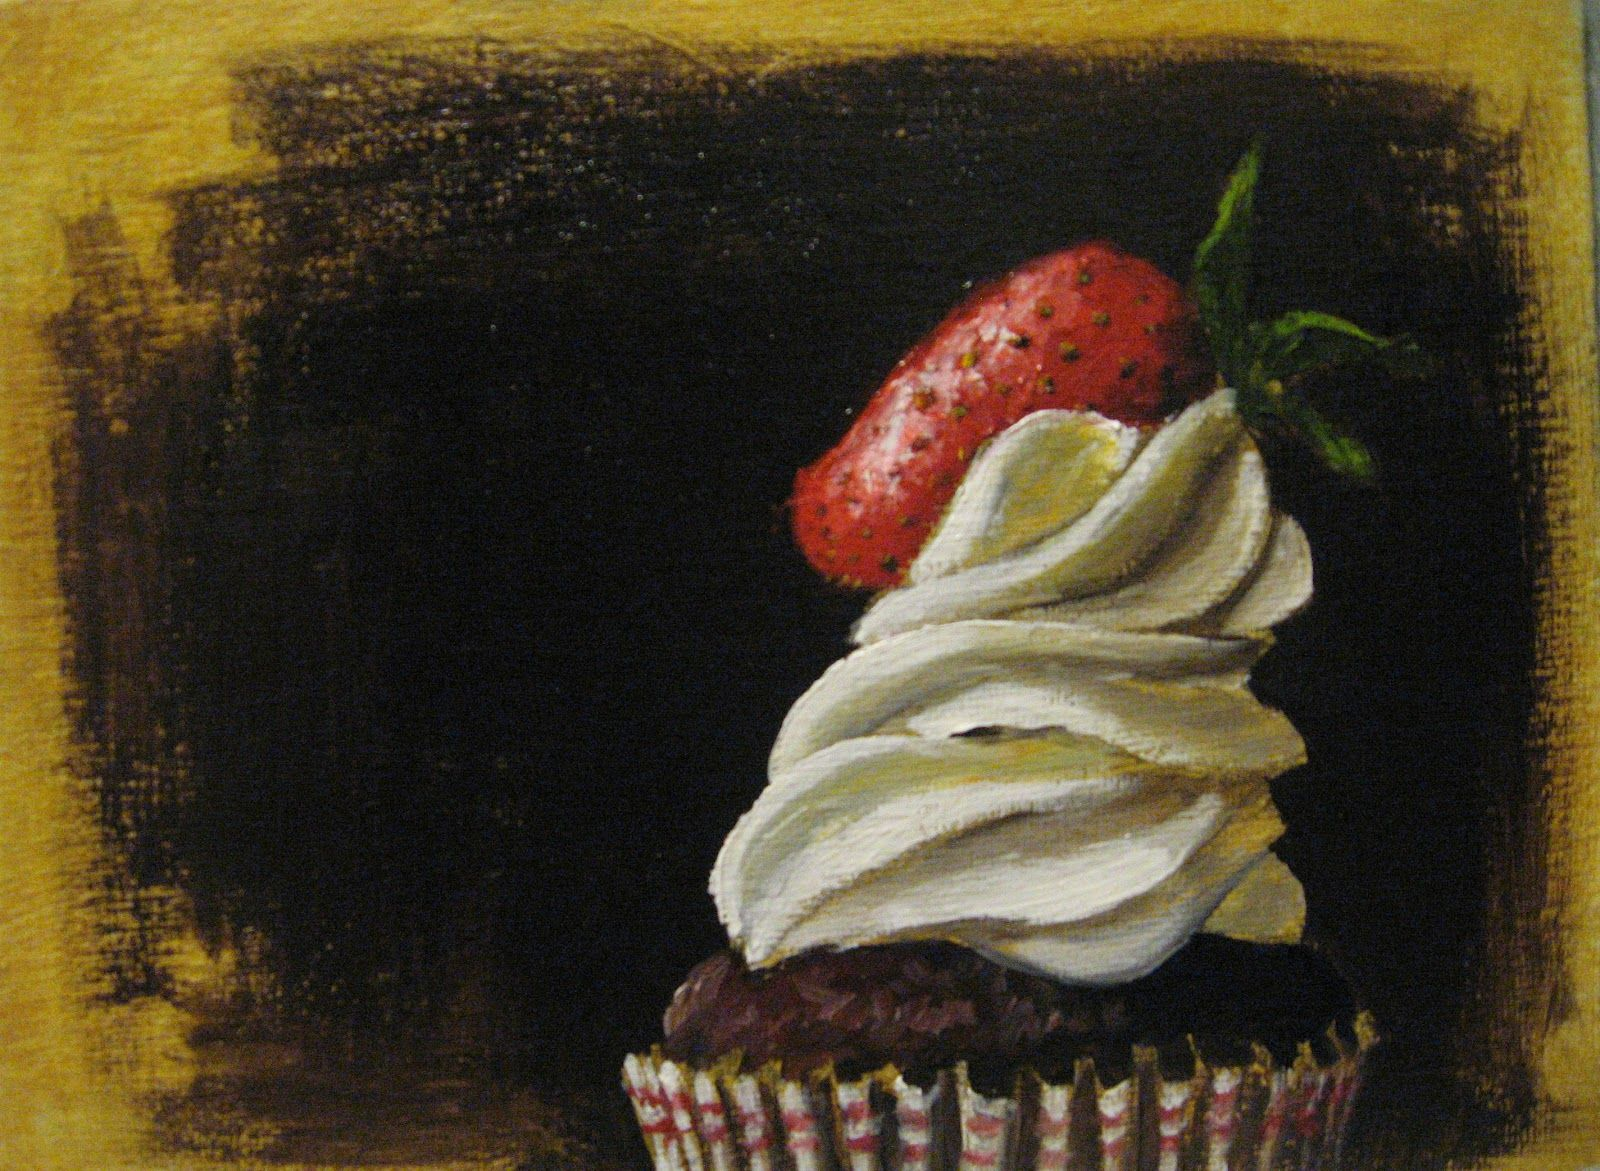 One Painting a Day: Chocolate Cupcake and Strawberry